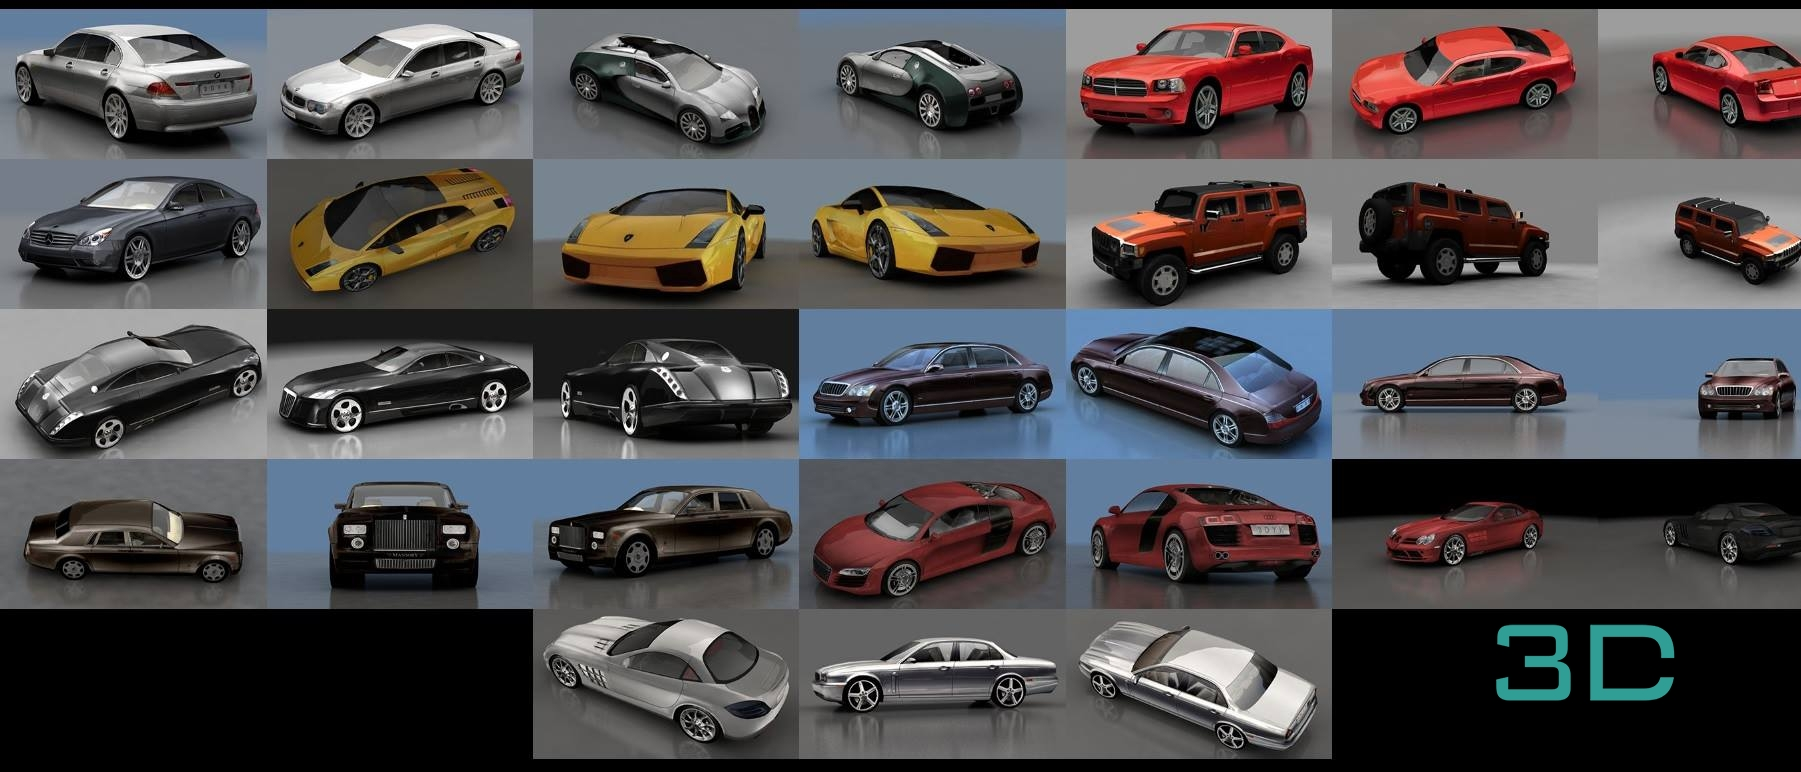 3d car models free download for 3ds max